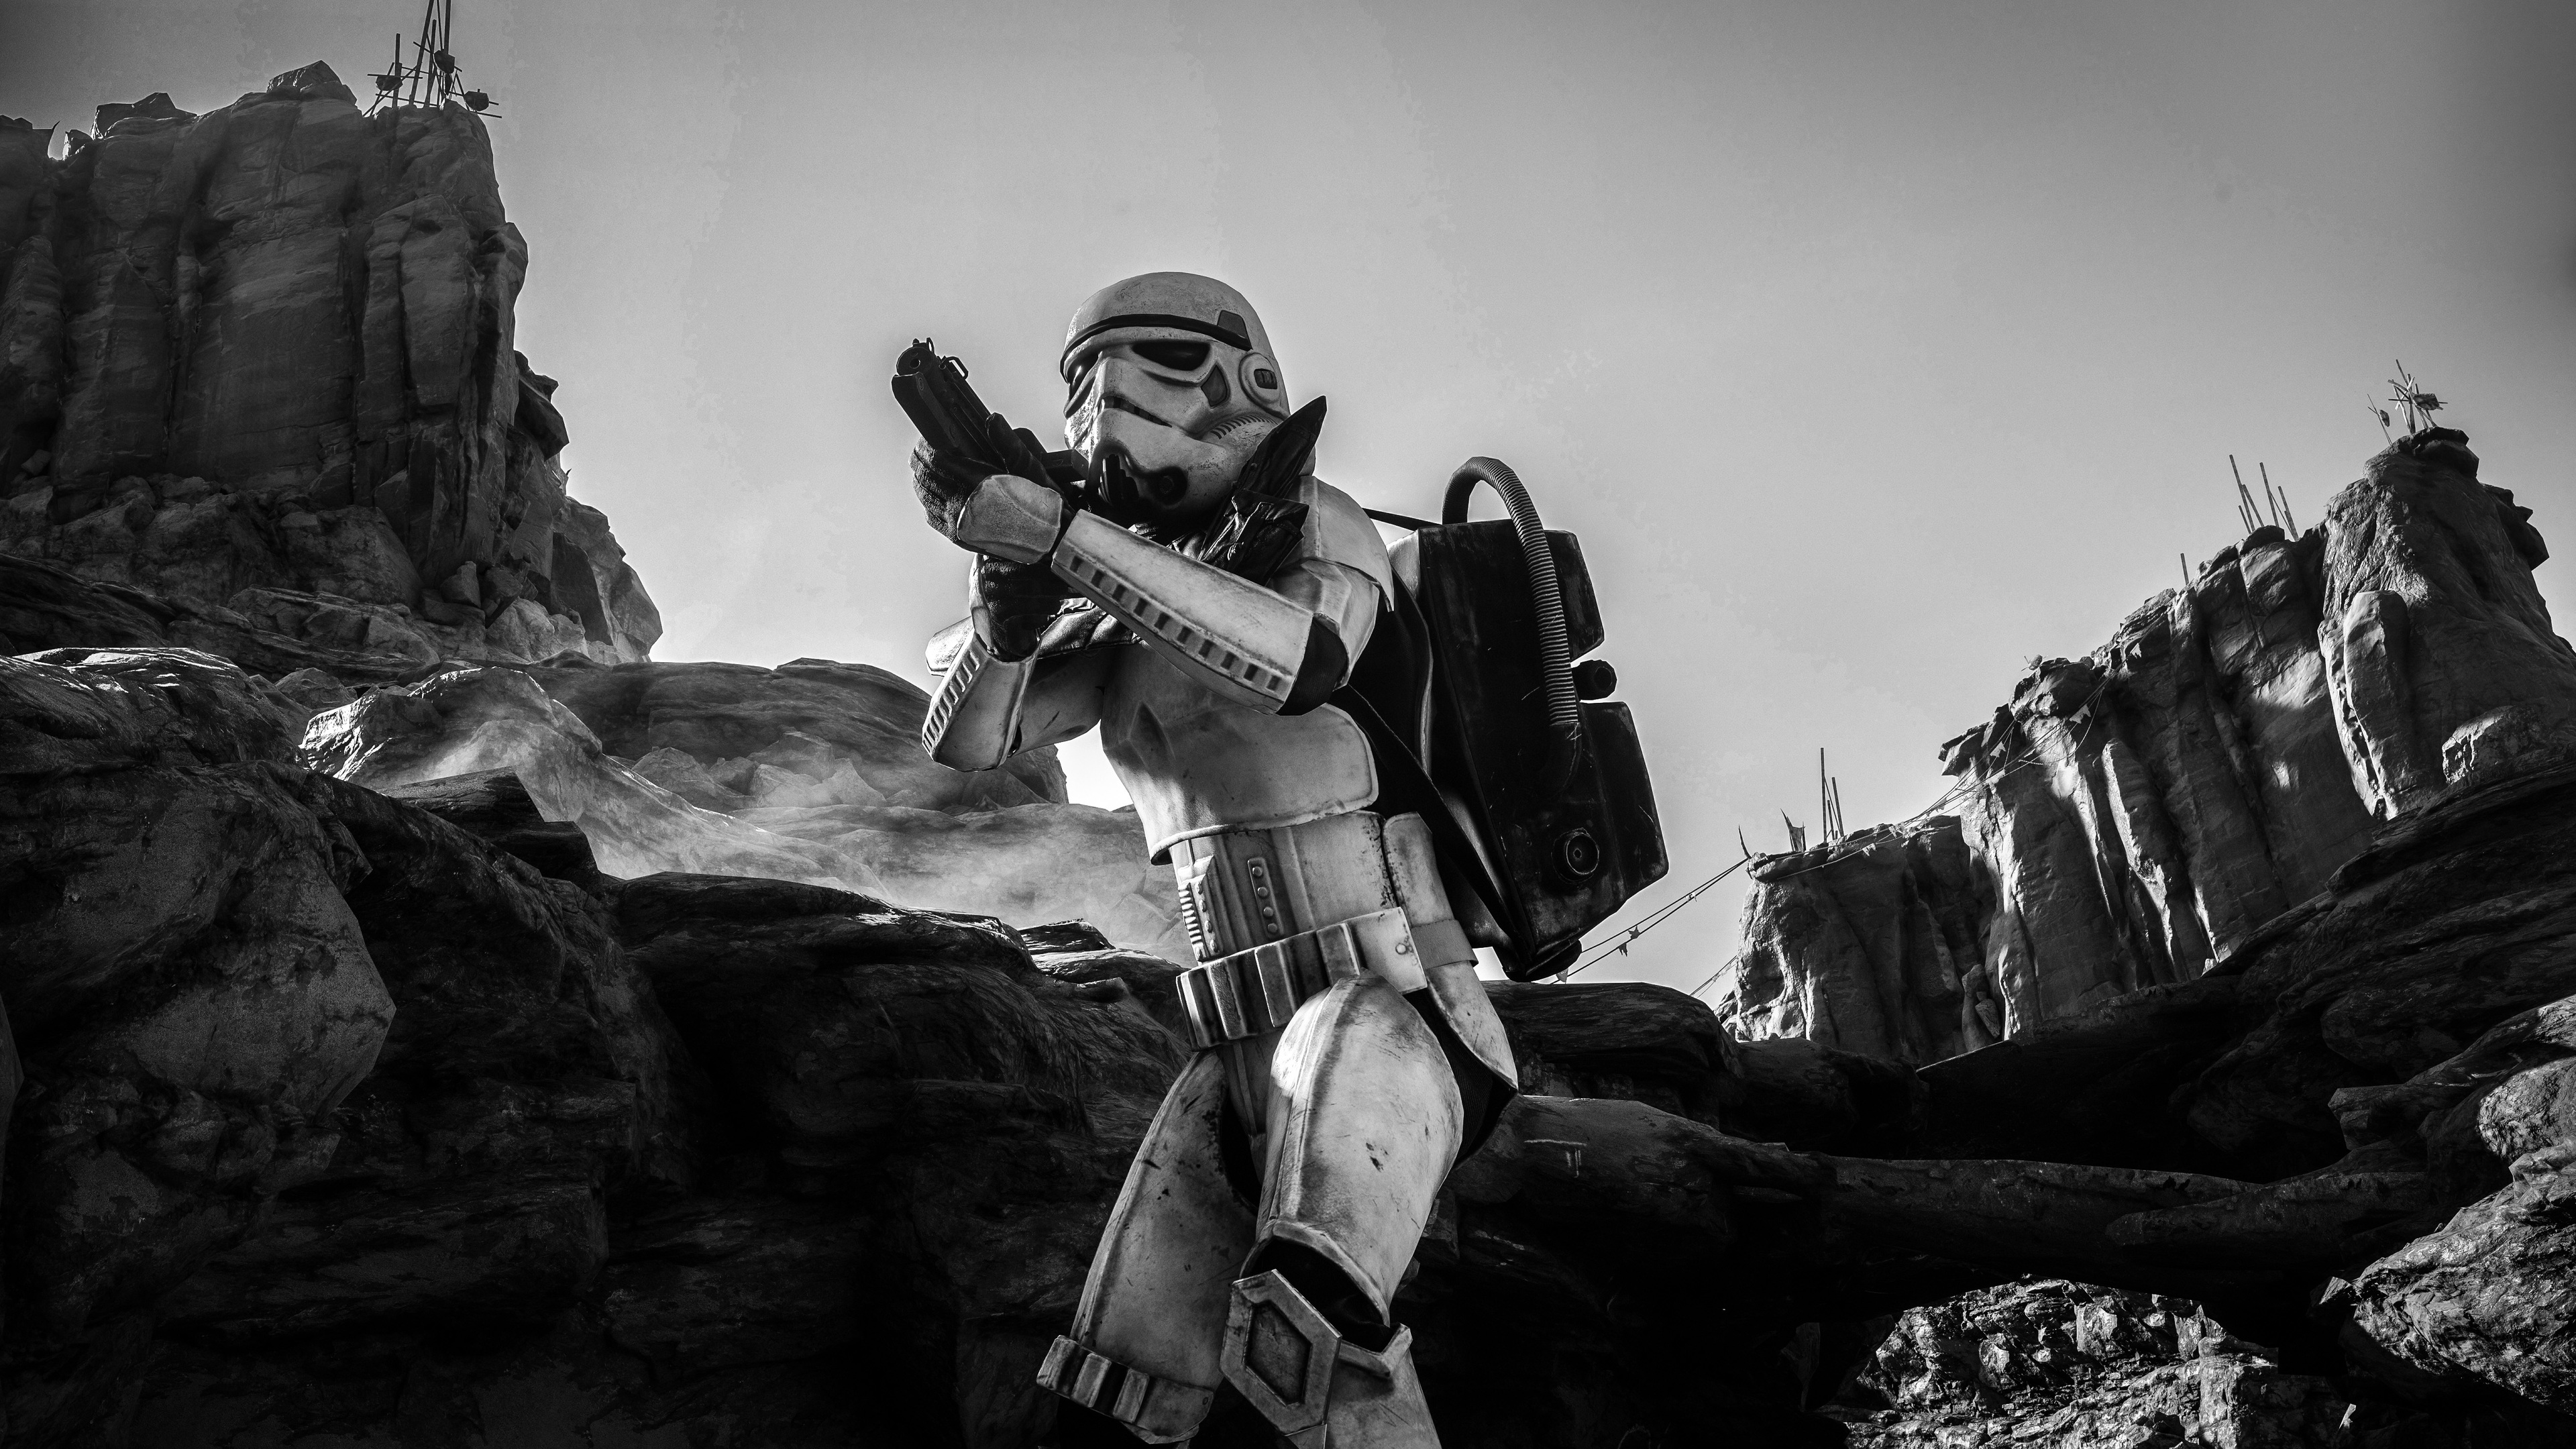 Wallpaper 4k Stormtrooper 5k Wallpapers Black And White